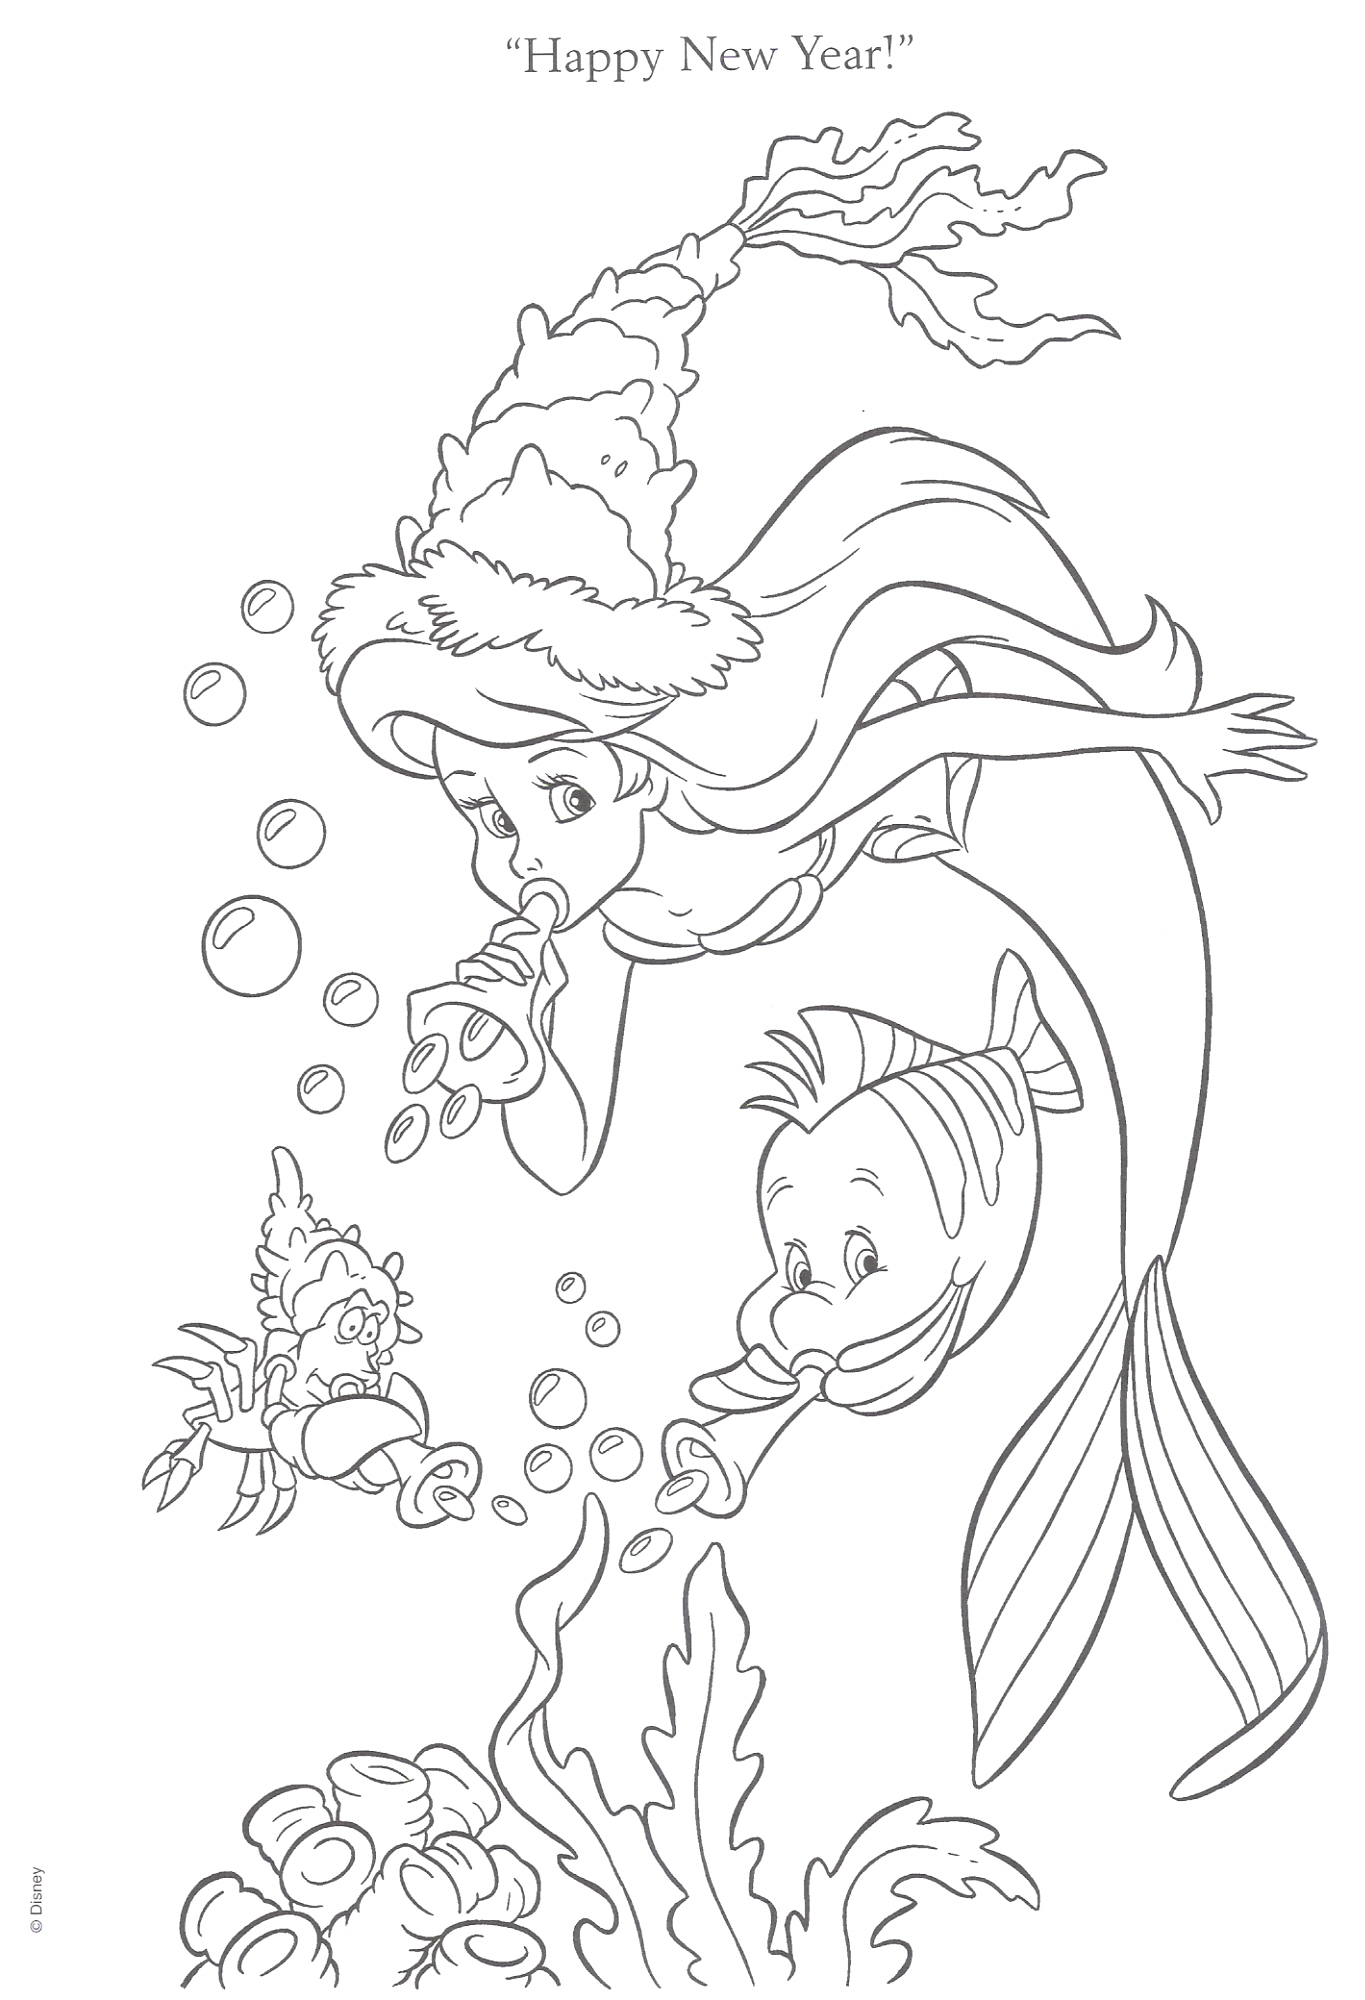 The Little Mermaid Coloring Pages7 Coloring Kids